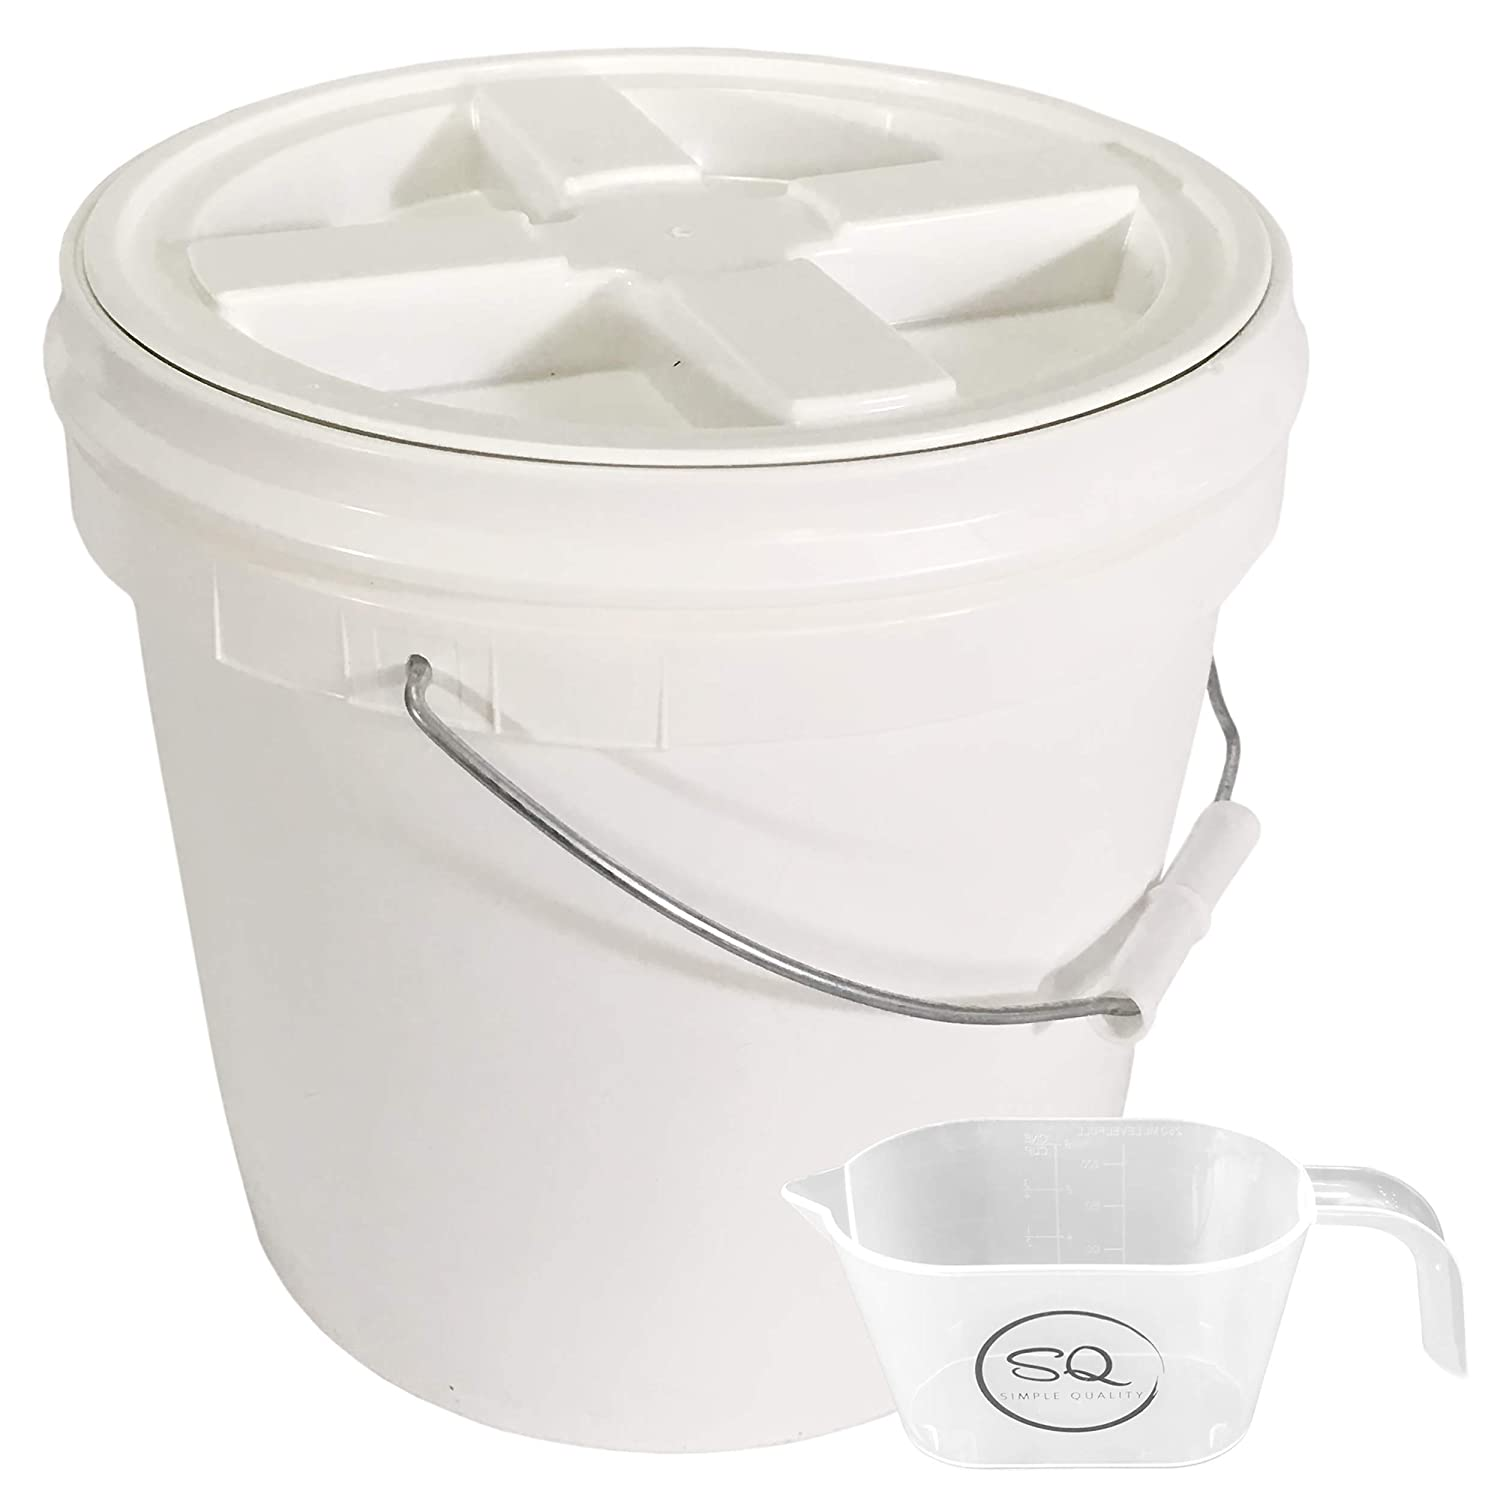 2 Gallon Food Grade BPA Free Letica Bucket with Gamma Seal Lid - Lid Has Been Installed To The Bucket - Bundle And A One Cup Measuring Cup with Simple Quality Logo